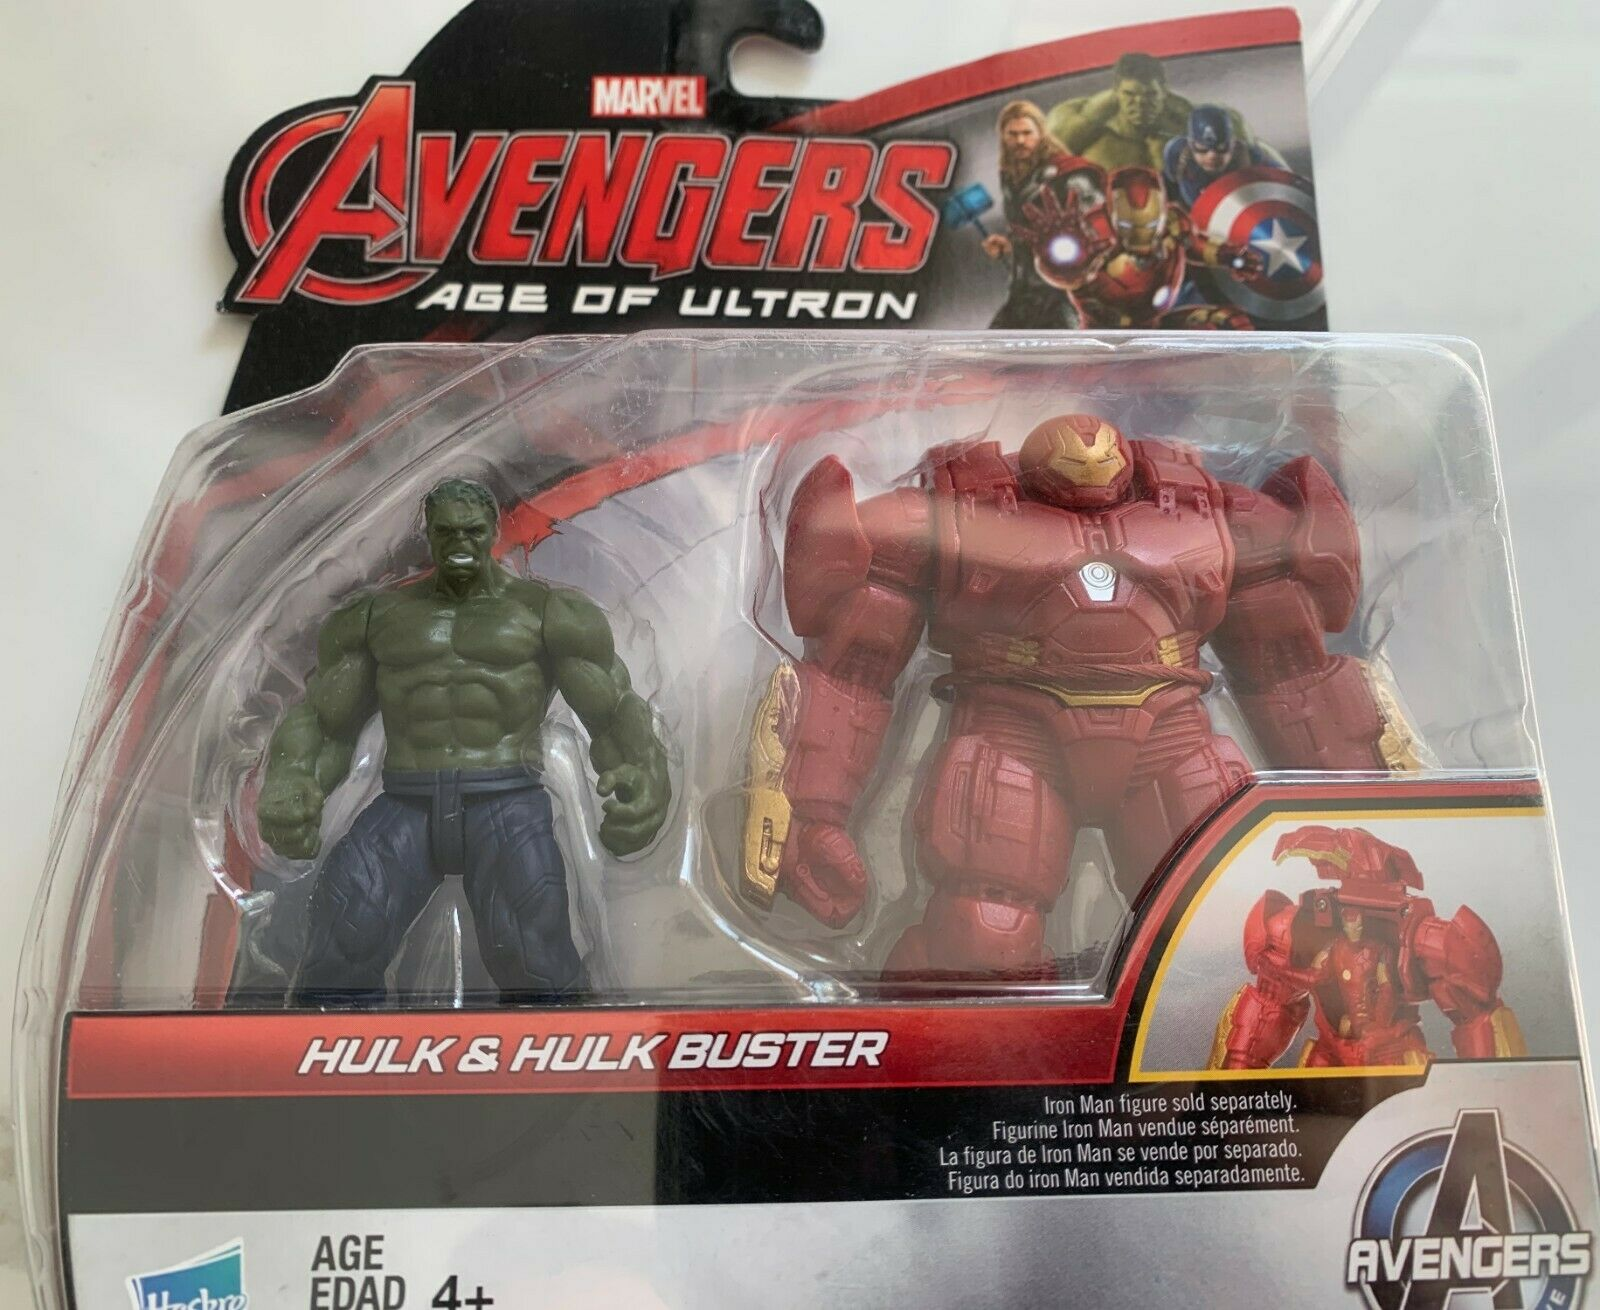 Marvel  Avengers Age of Ultron Hulk and HulkBuster Figure 2.5 inch